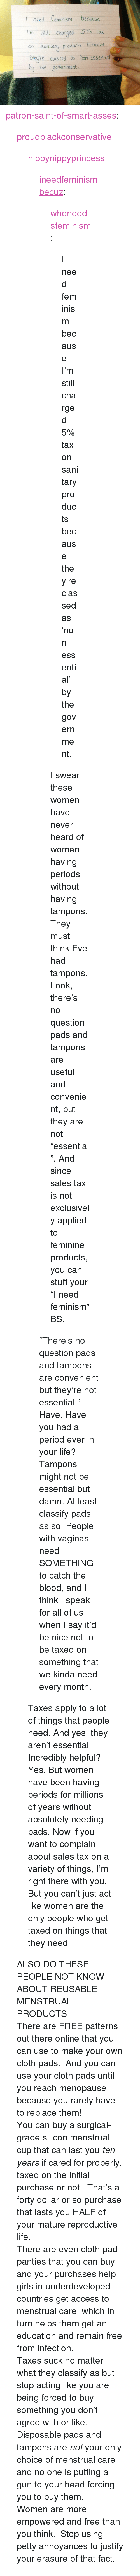 "petty: need feminism because  I'm still charged 5% tax  Sanitary products because  neure classed as non-essential  by he government  On <p><a href=""http://patron-saint-of-smart-asses.tumblr.com/post/118452125879/proudblackconservative-hippynippyprincess"" class=""tumblr_blog"">patron-saint-of-smart-asses</a>:</p>  <blockquote><p><a class=""tumblr_blog"" href=""http://proudblackconservative.tumblr.com/post/118451269594/hippynippyprincess-ineedfeminismbecuz"">proudblackconservative</a>:</p>  <blockquote><p><a class=""tumblr_blog"" href=""http://hippynippyprincess.tumblr.com/post/117898435424/ineedfeminismbecuz-whoneedsfeminism-i-need"">hippynippyprincess</a>:</p><blockquote><p><a class=""tumblr_blog"" href=""http://ineedfeminismbecuz.tumblr.com/post/111279727860/whoneedsfeminism-i-need-feminism-because-im"">ineedfeminismbecuz</a>:</p>  <blockquote><p><a class=""tumblr_blog"" href=""http://whoneedsfeminism.tumblr.com/post/85513541919/i-need-feminism-because-im-still-charged-5-tax"">whoneedsfeminism</a>:</p>  <blockquote><p>I need feminism because I'm still charged 5% tax on sanitary products because they're classed as 'non-essential' by the government. </p></blockquote>  <p>I swear these women have never heard of women having periods without having tampons. They must think Eve had tampons. Look, there's no question pads and tampons are useful and convenient, but they are not ""essential"". And since sales tax is not exclusively applied to feminine products, you can stuff your ""I need feminism"" BS.</p></blockquote>  <p>""There's no question pads and tampons are convenient but they're not essential.""<br/>Have. Have you had a period ever in your life? Tampons might not be essential but damn. At least classify pads as so. People with vaginas need SOMETHING to catch the blood, and I think I speak for all of us when I say it'd be nice not to be taxed on something that we kinda need every month.</p></blockquote> <p>Taxes apply to a lot of things that people need. And yes, they aren't essential. Incredibly helpful? Yes. But women have been having periods for millions of years without absolutely needing pads. Now if you want to complain about sales tax on a variety of things, I'm right there with you. But you can't just act like women are the only people who get taxed on things that they need.</p></blockquote>  <p>ALSO DO THESE PEOPLE NOT KNOW ABOUT REUSABLE MENSTRUAL PRODUCTS</p><p>There are FREE patterns out there online that you can use to make your own cloth pads.  And you can use your cloth pads until you reach menopause because you rarely have to replace them!<br/></p><p>You can buy a surgical-grade silicon menstrual cup that can last you <i>ten years </i>if cared for properly, taxed on the initial purchase or not.  That's a forty dollar or so purchase that lasts you HALF of your mature reproductive life.<br/></p><p>There are even cloth pad panties that you can buy and your purchases help girls in underdeveloped countries get access to menstrual care, which in turn helps them get an education and remain free from infection.<br/></p><p>Taxes suck no matter what they classify as but stop acting like you are being forced to buy something you don't agree with or like. Disposable pads and tampons are <i>not</i> your only choice of menstrual care and no one is putting a gun to your head forcing you to buy them. <br/></p><p>Women are more empowered and free than you think.  Stop using petty annoyances to justify your erasure of that fact.<br/></p></blockquote>"